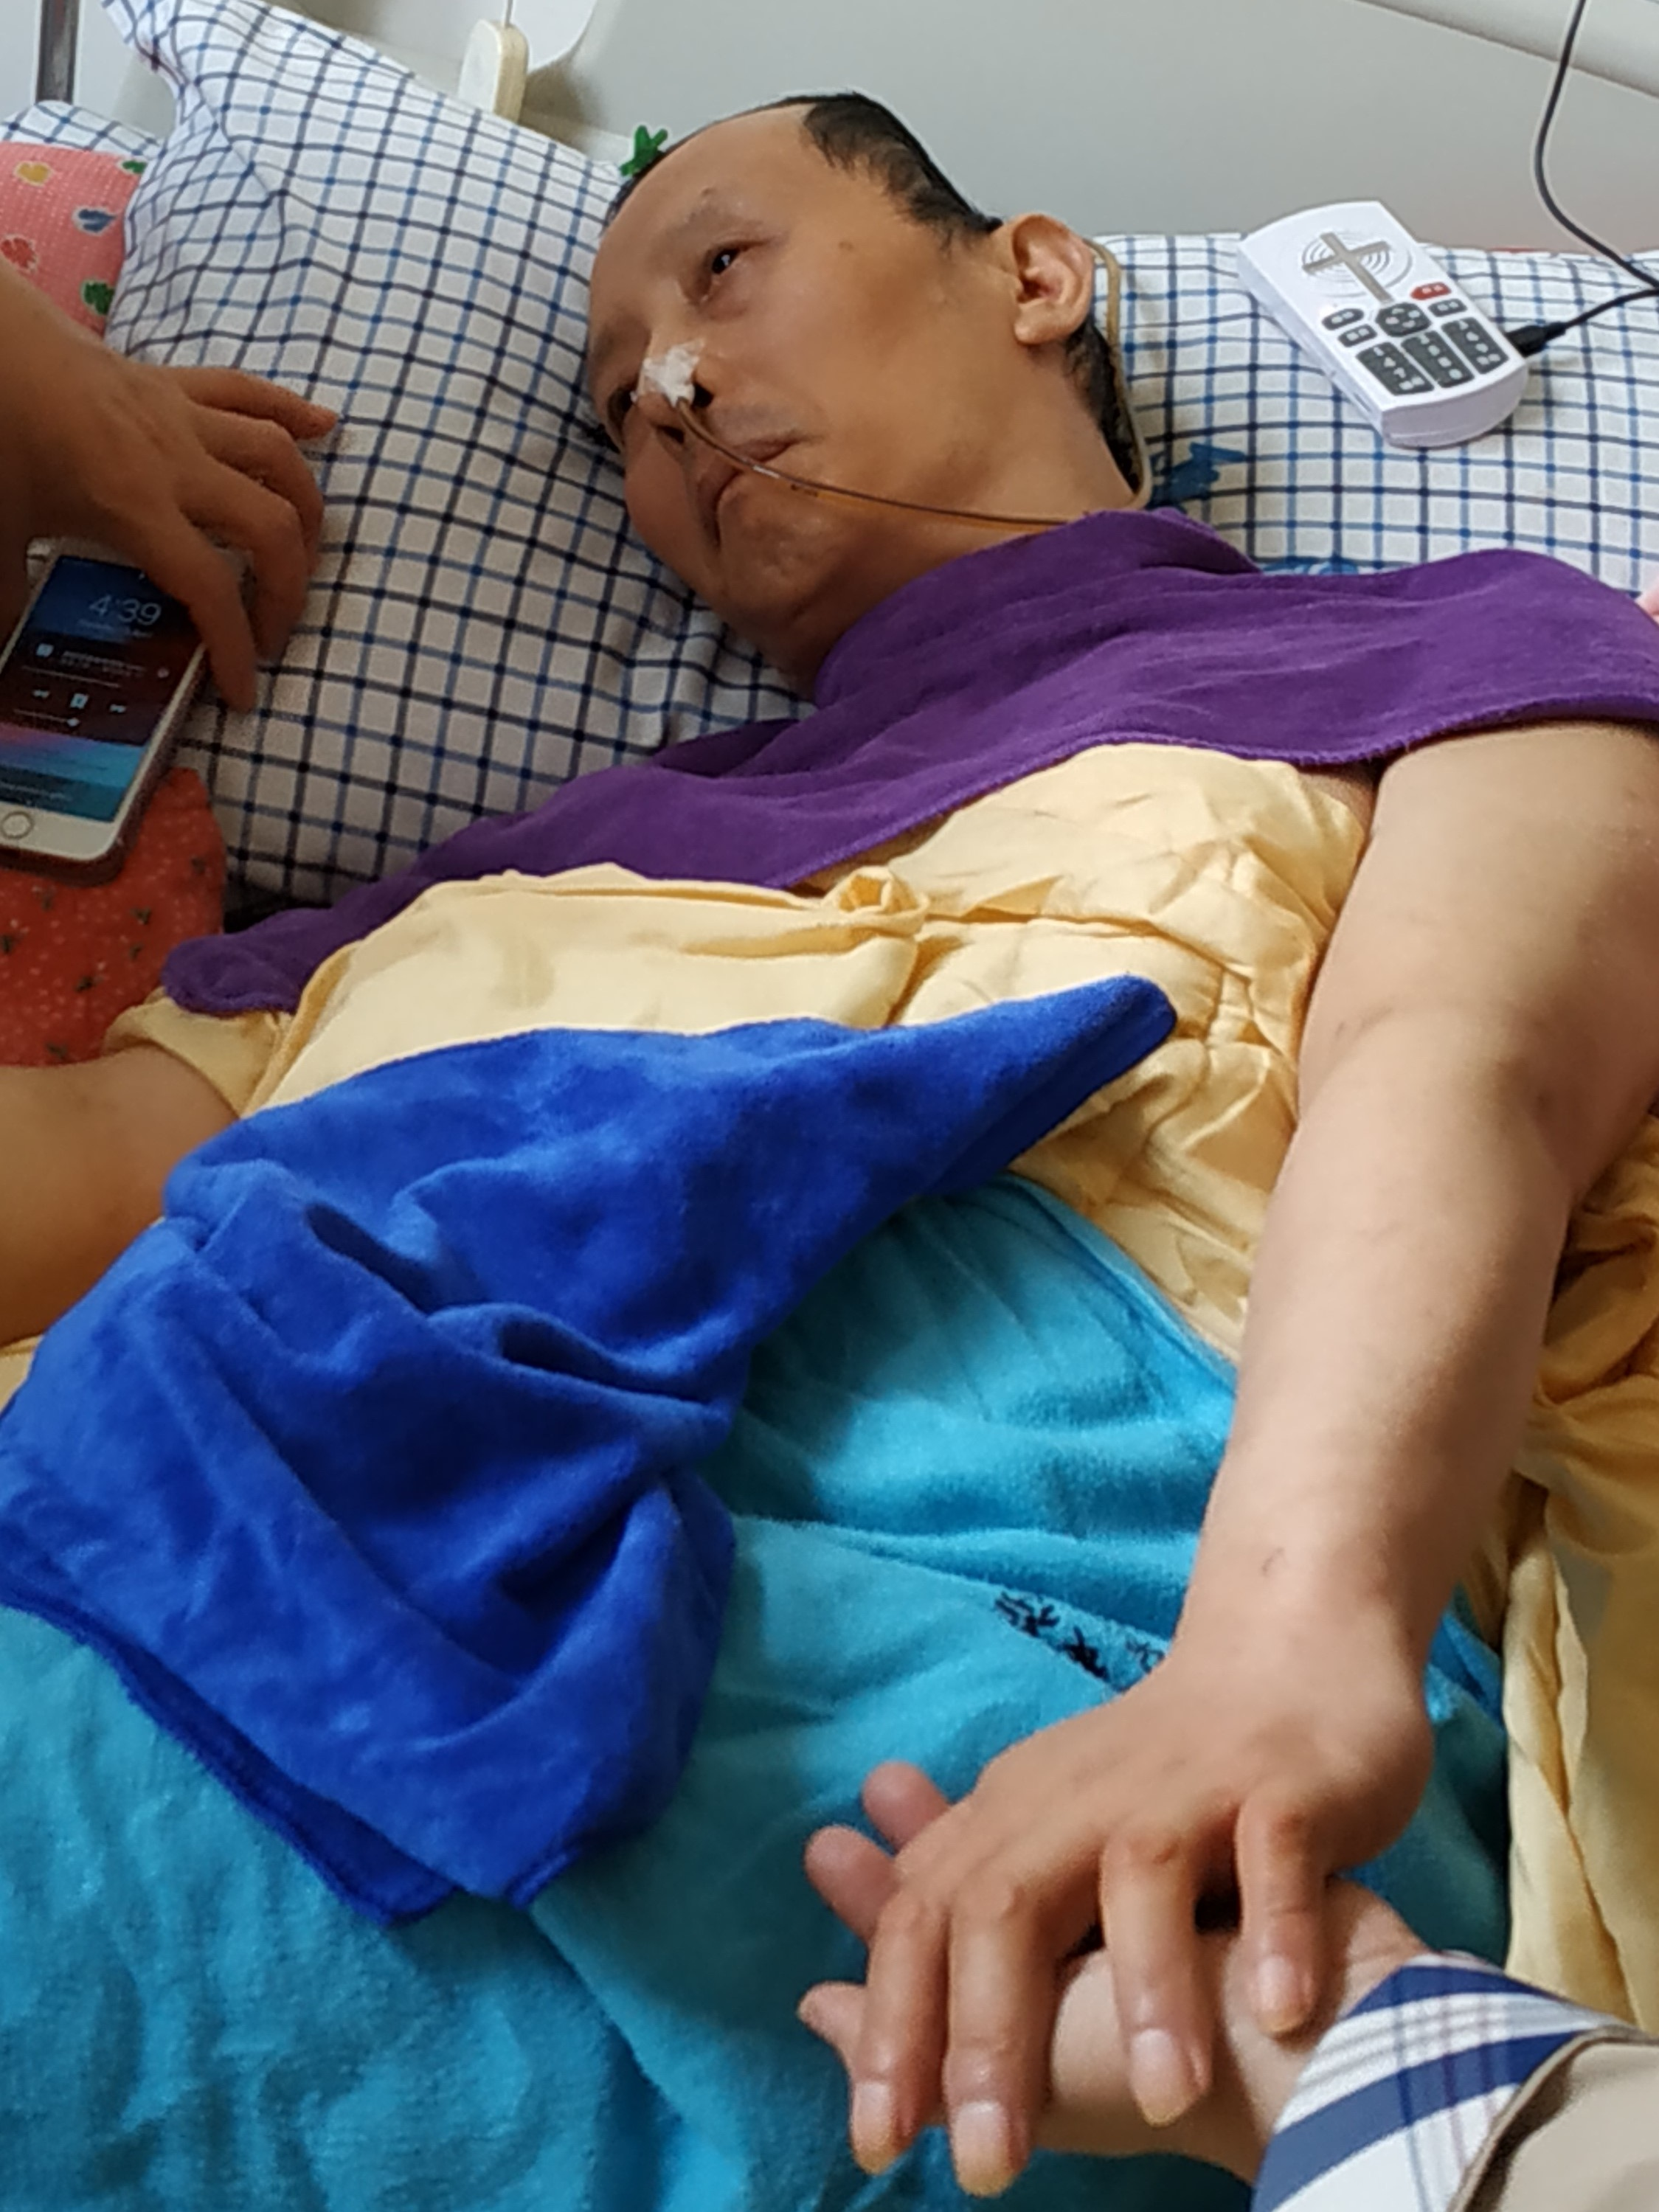 Zhao Xiguo, had to have a part of his brain removed surgically after suffering a head injury at the workplace, and is now completely bed-bound.